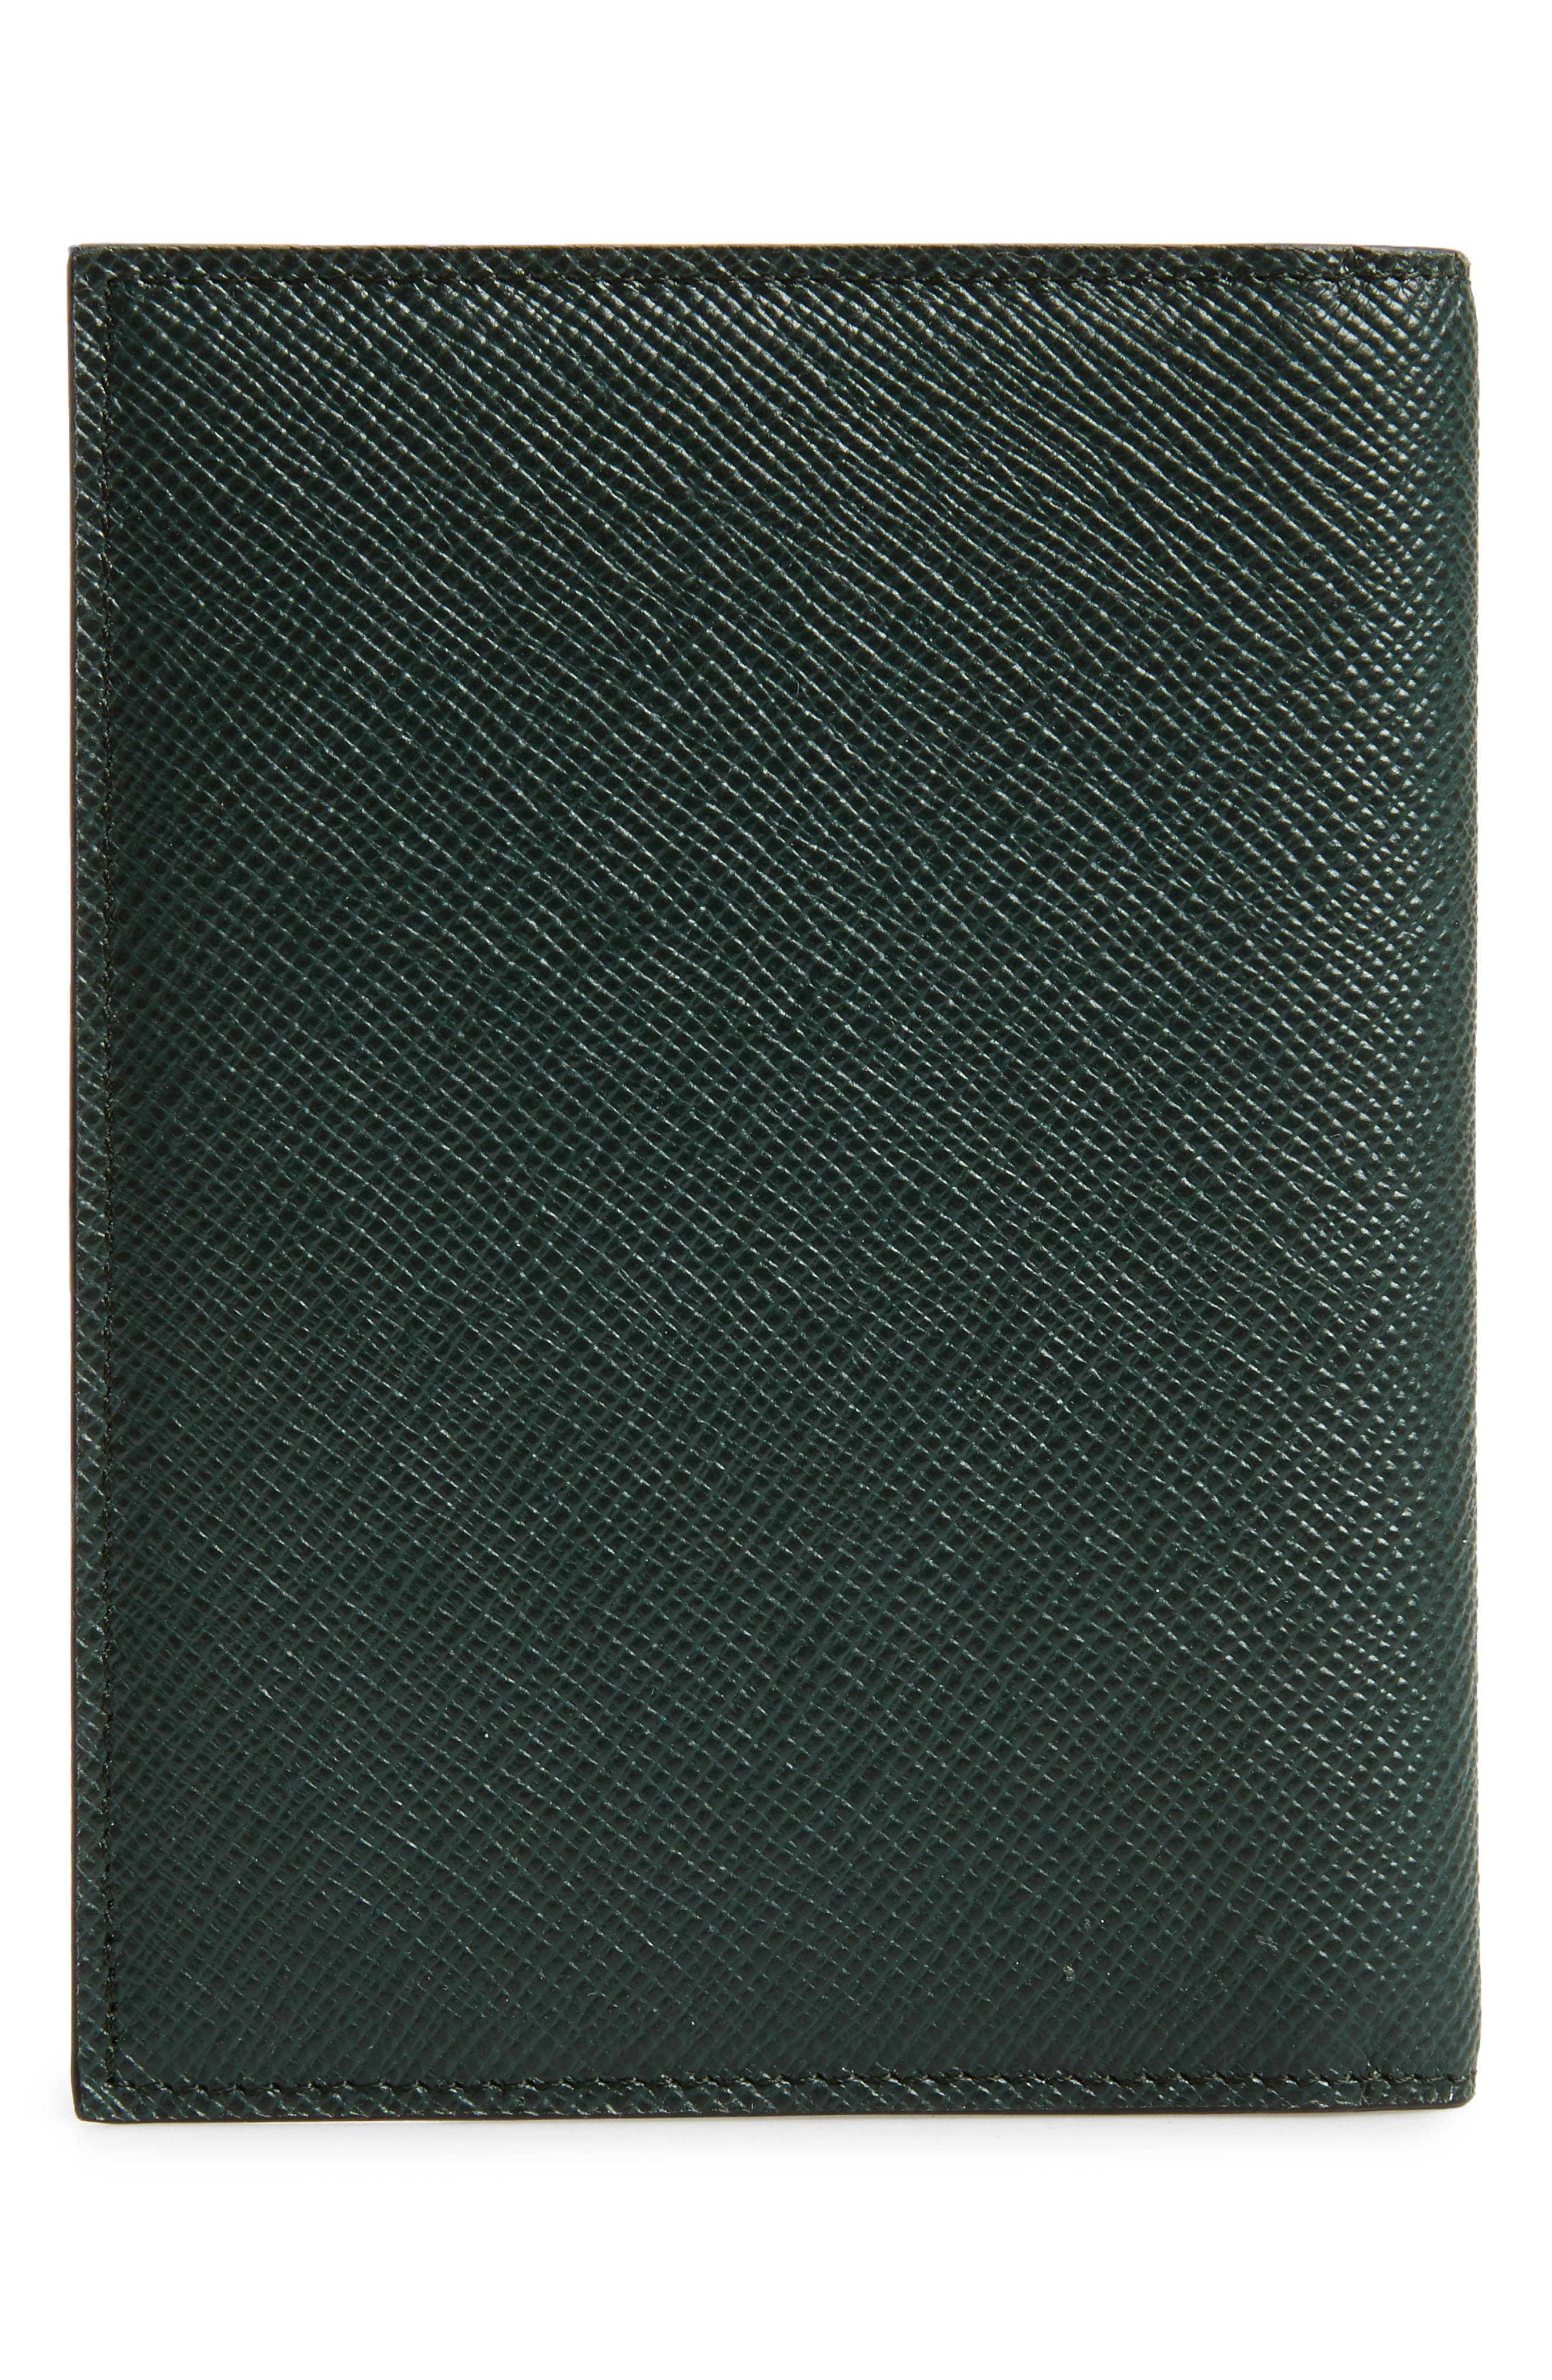 Evolution Leather Passport Case,                             Alternate thumbnail 3, color,                             Forest Green